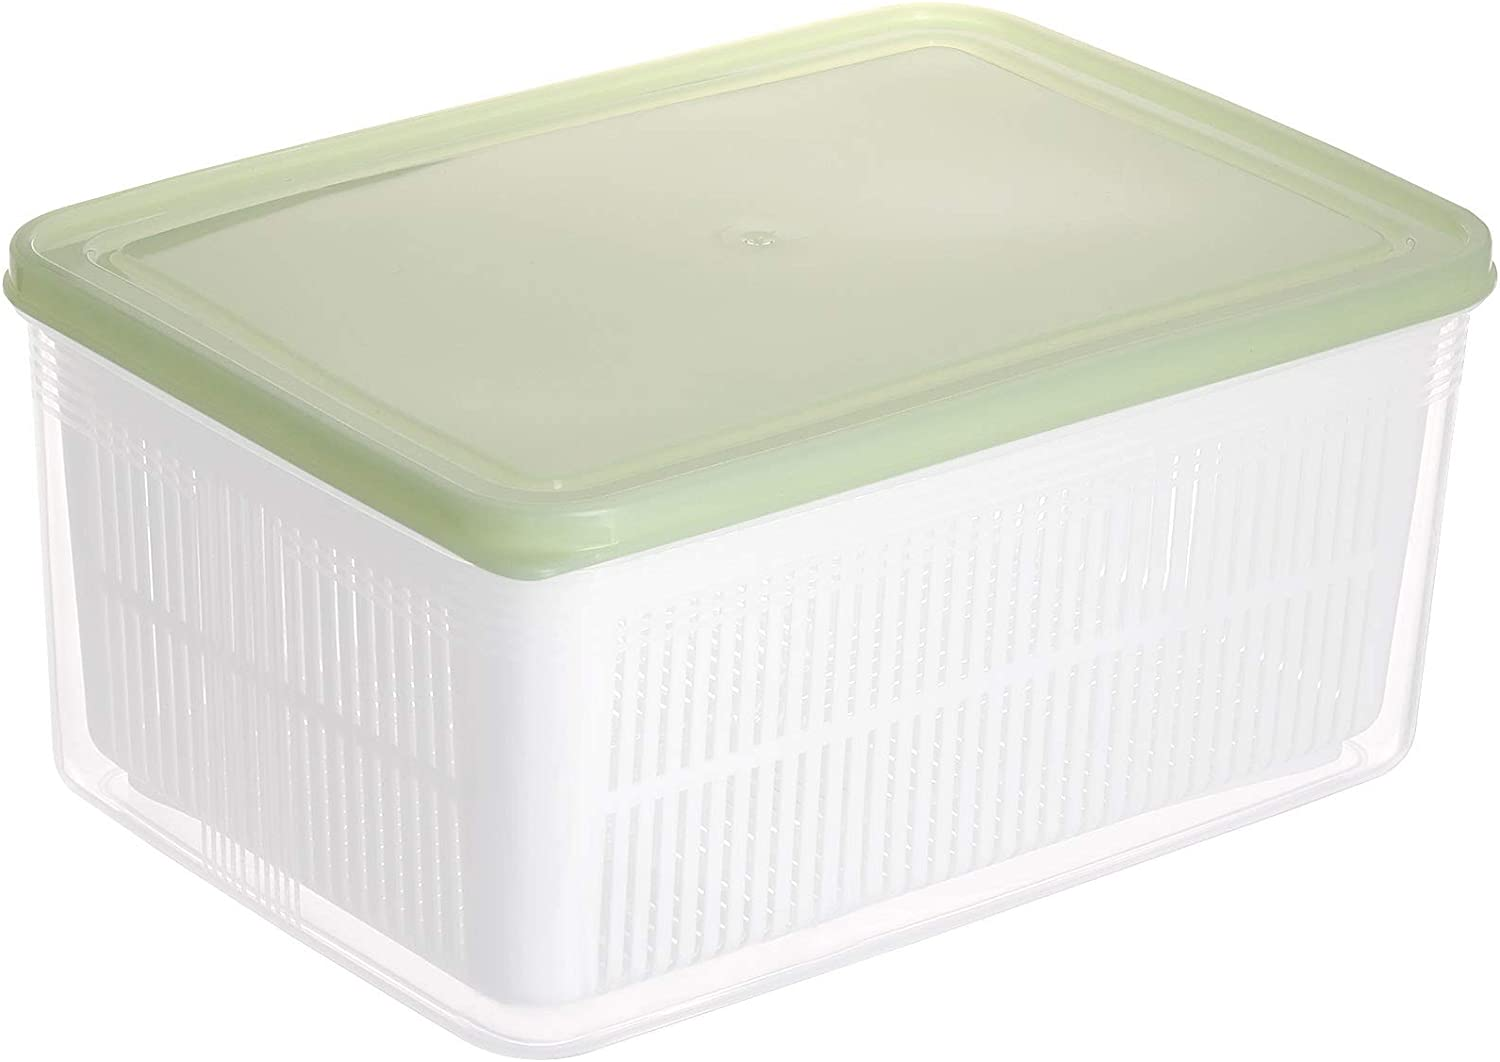 9 in Produce Containers Food Storage for Refrigerator, Berry Lettuce Saver with Filter